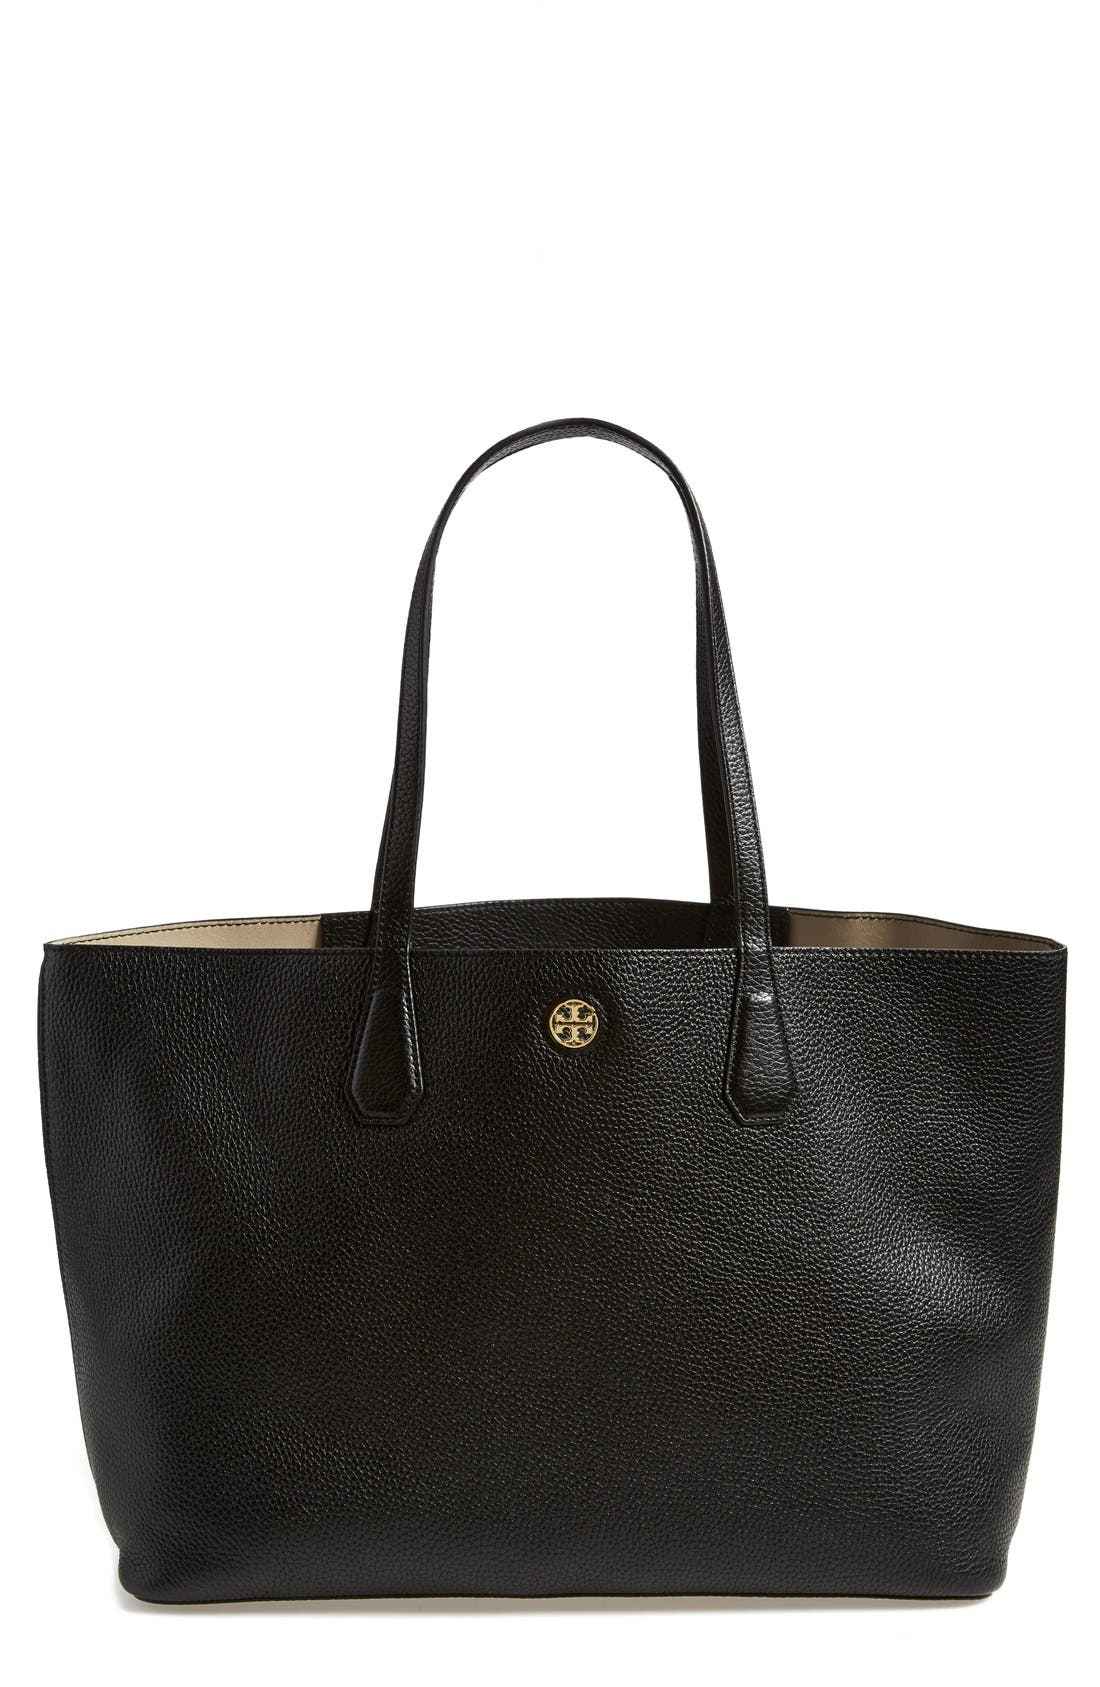 'Perry' Leather Tote,                             Main thumbnail 1, color,                             001